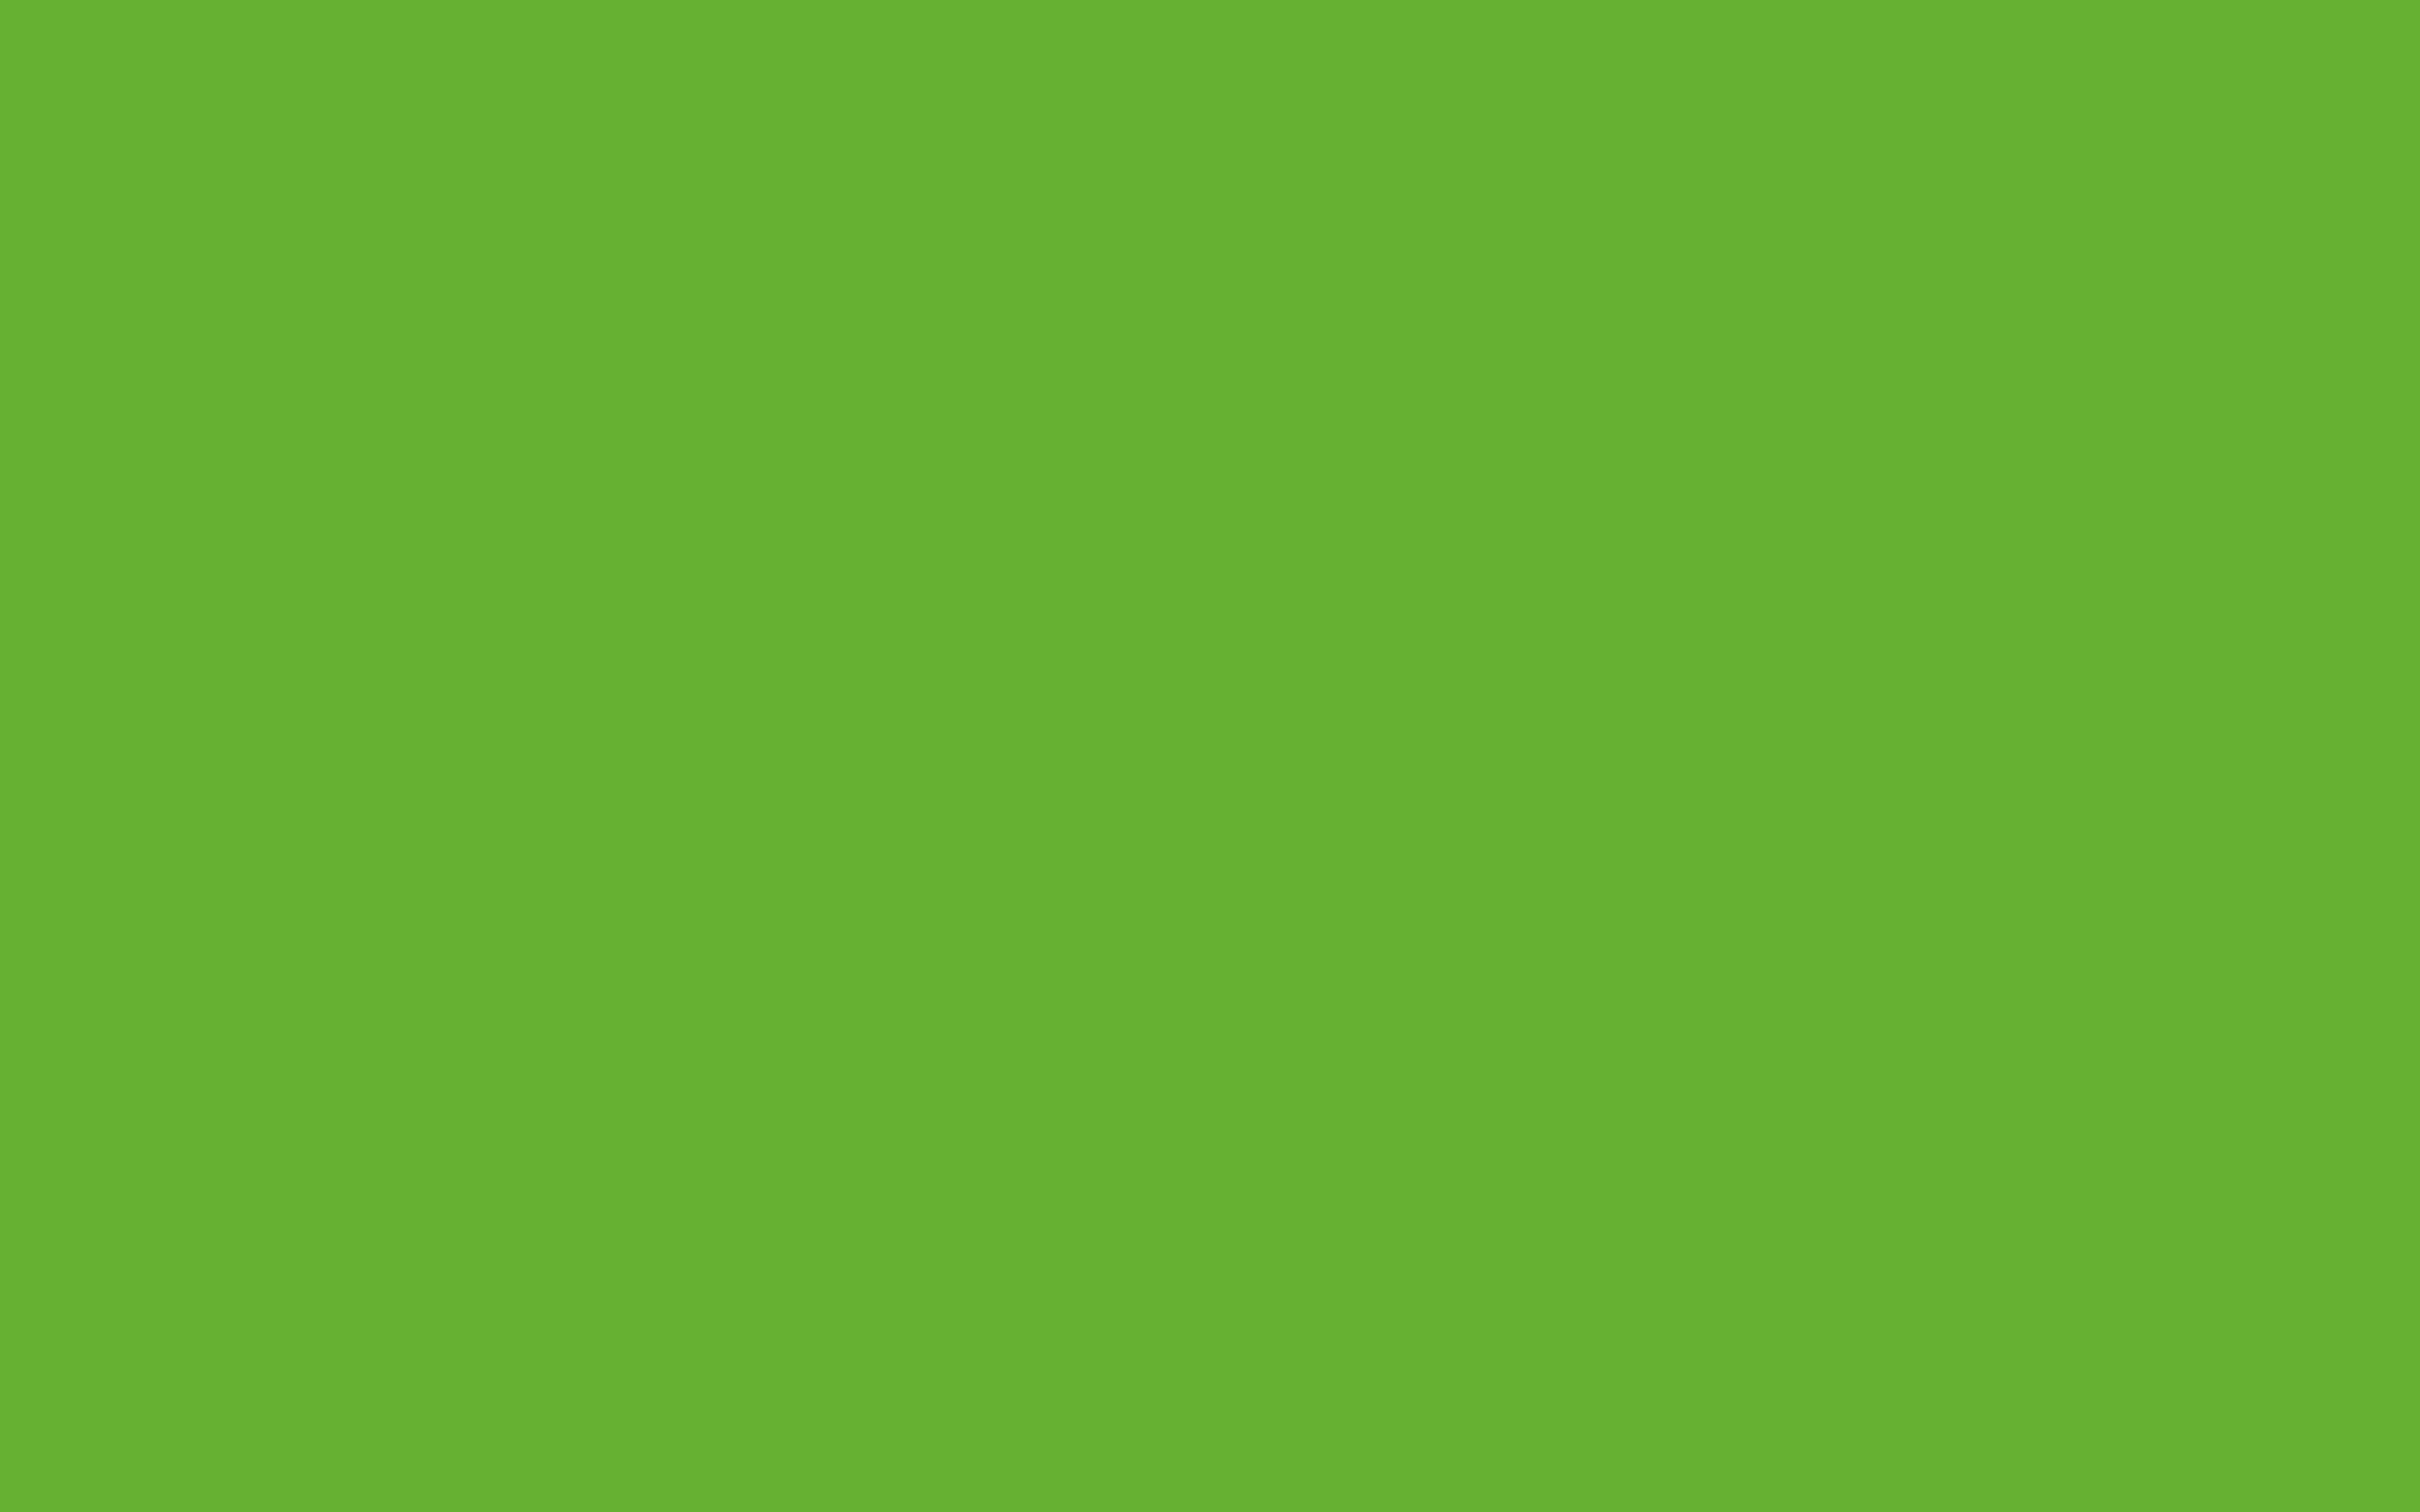 2560x1600 Green RYB Solid Color Background